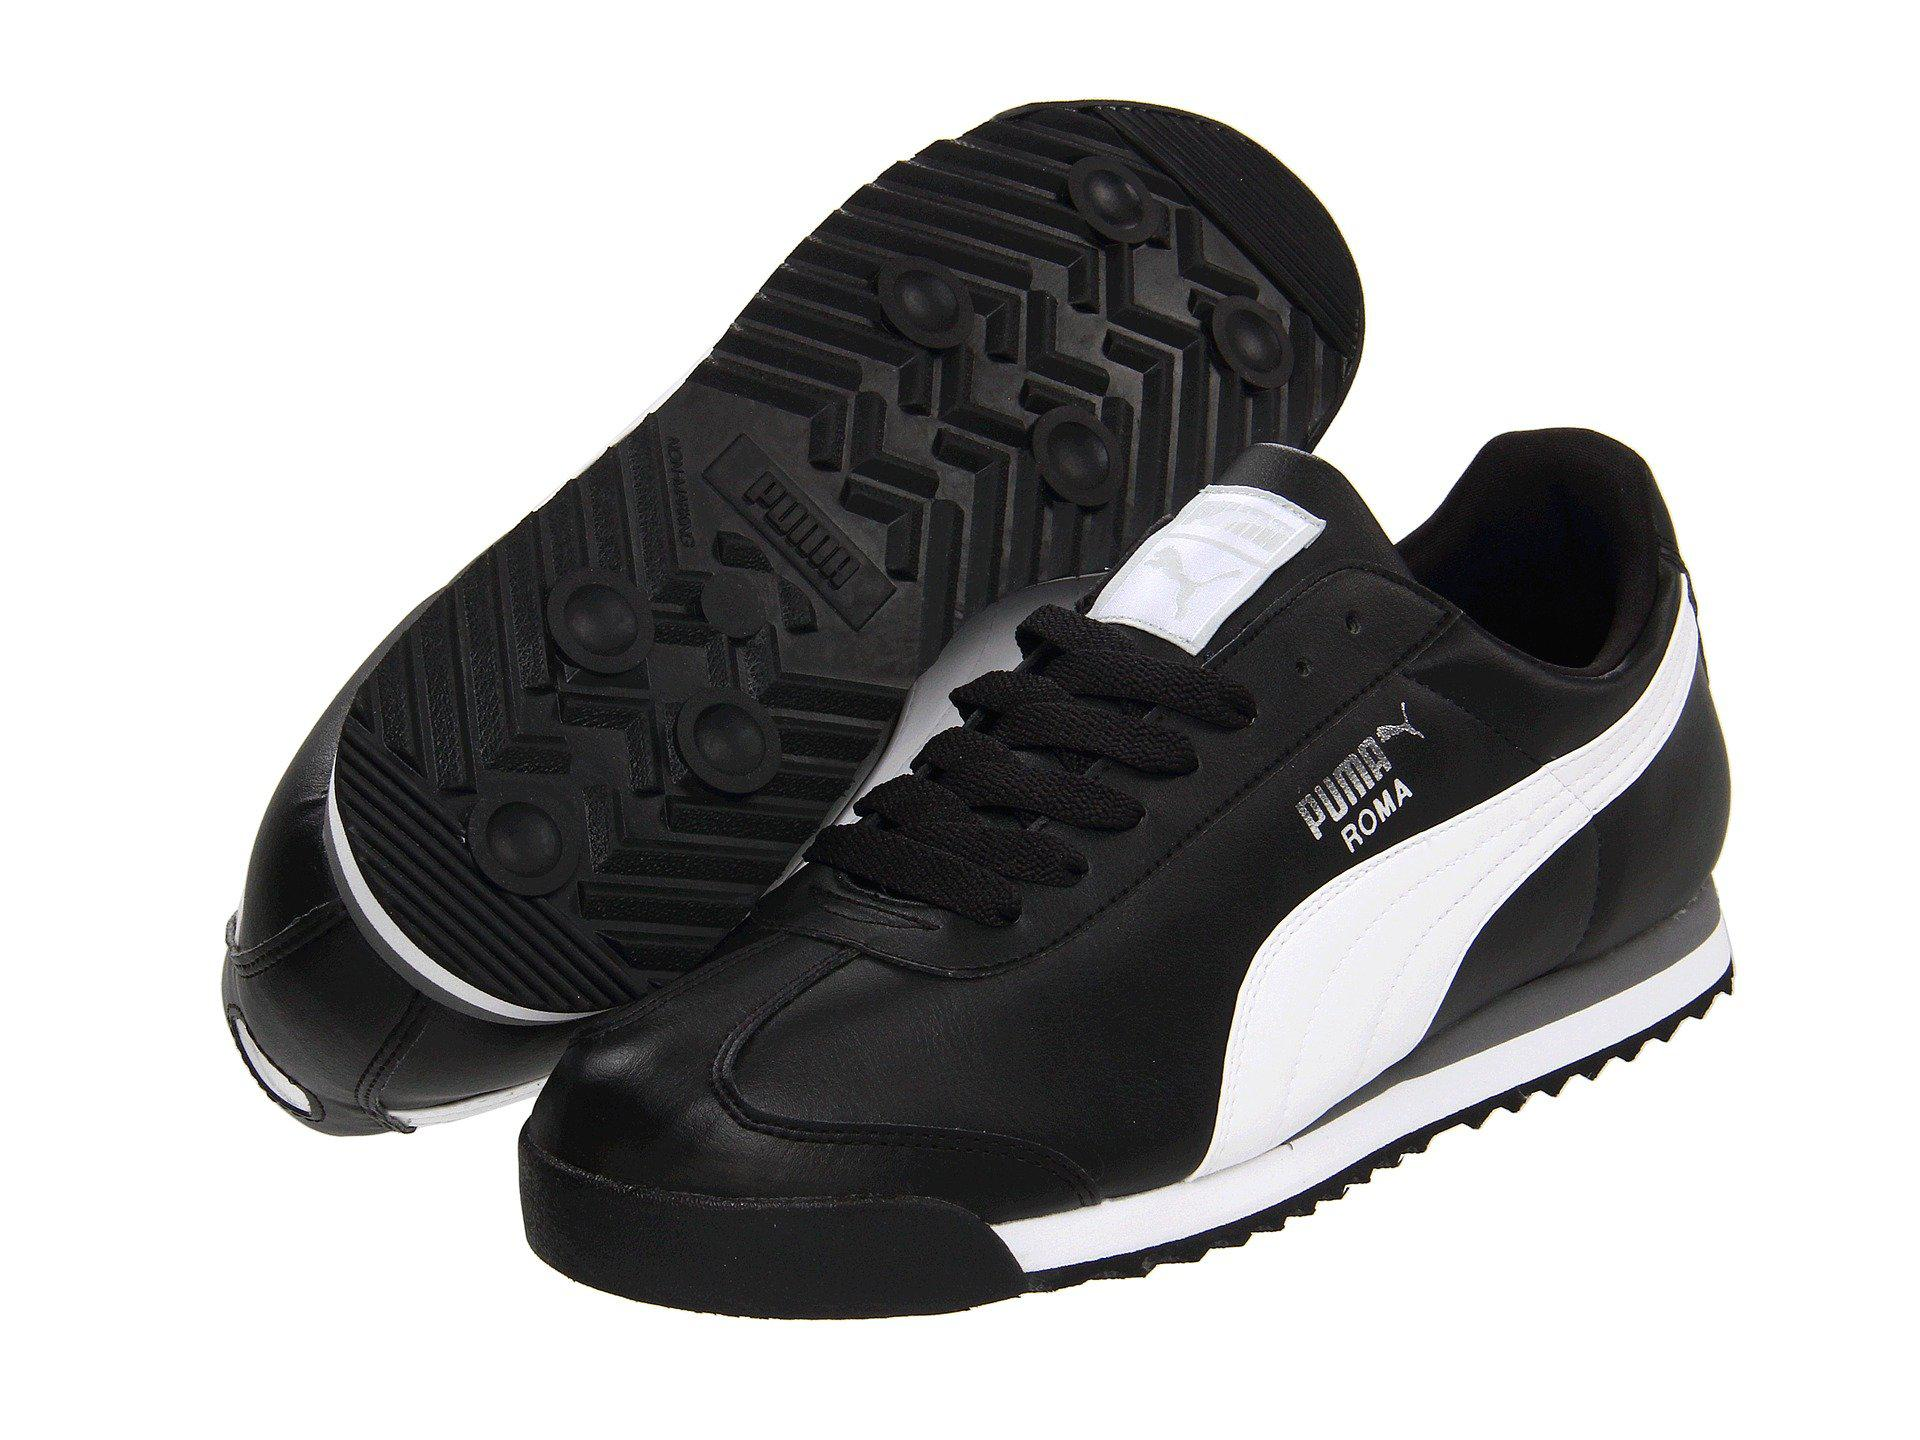 610b26473c4957 Lyst - PUMA Roma Basic (black black) Men s Shoes in Black for Men